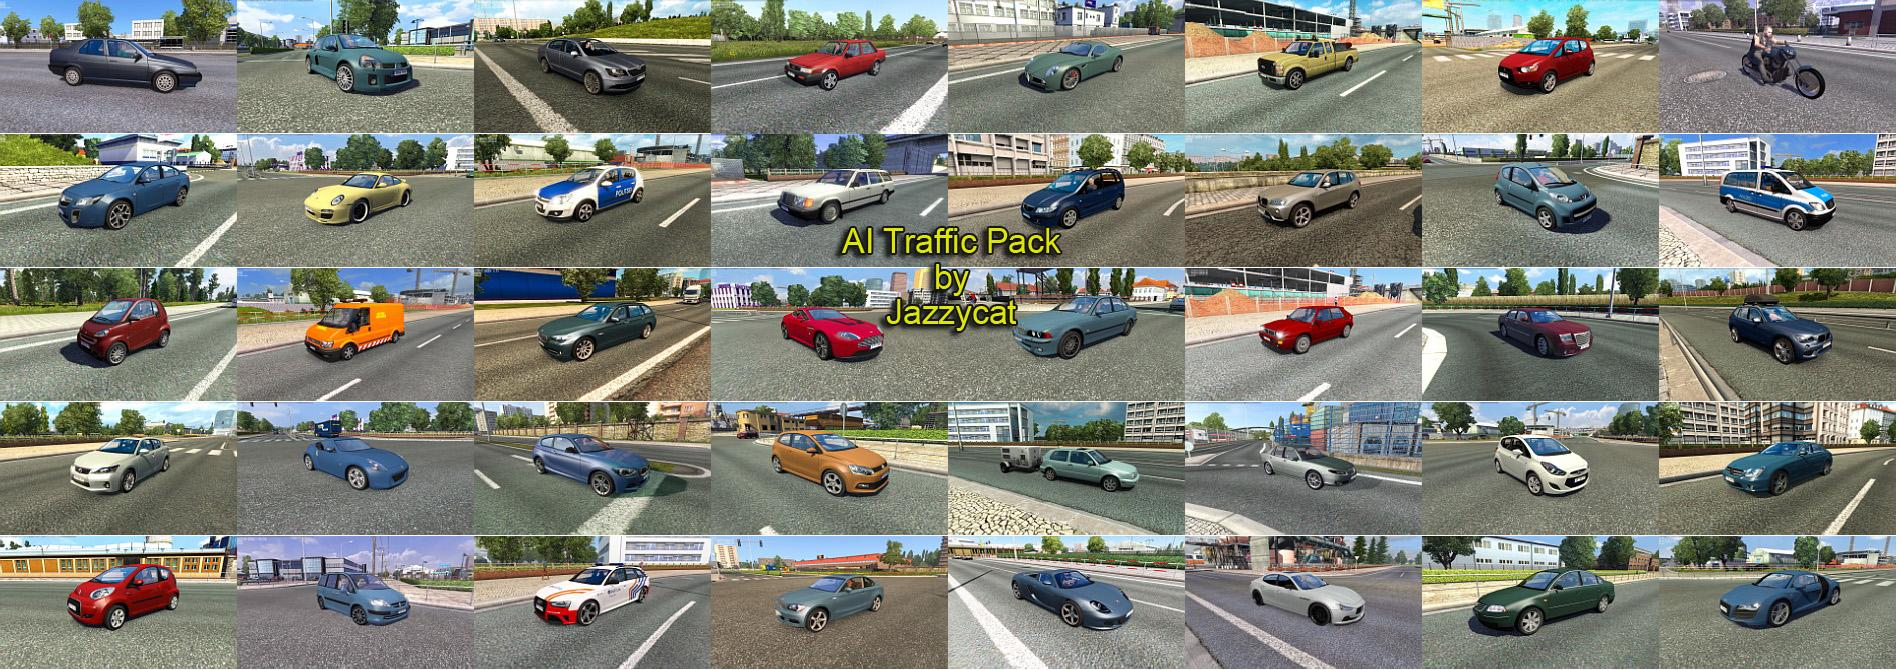 AI TRAFFIC PACK BY JAZZYCAT V 6 1 ETS2 - Euro Truck